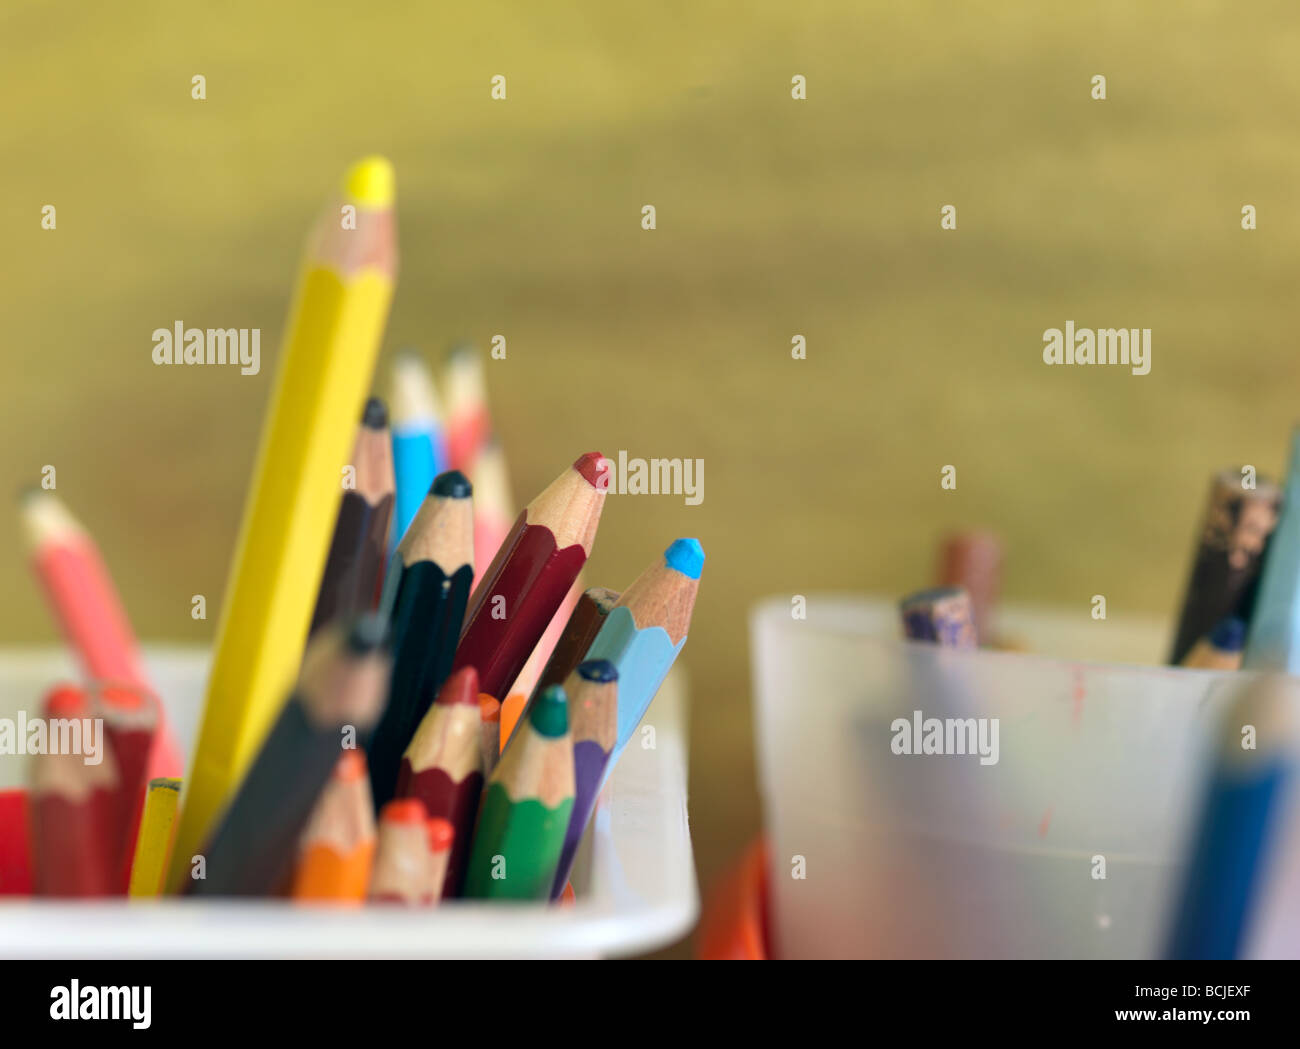 colored pencils in school pots - Stock Image